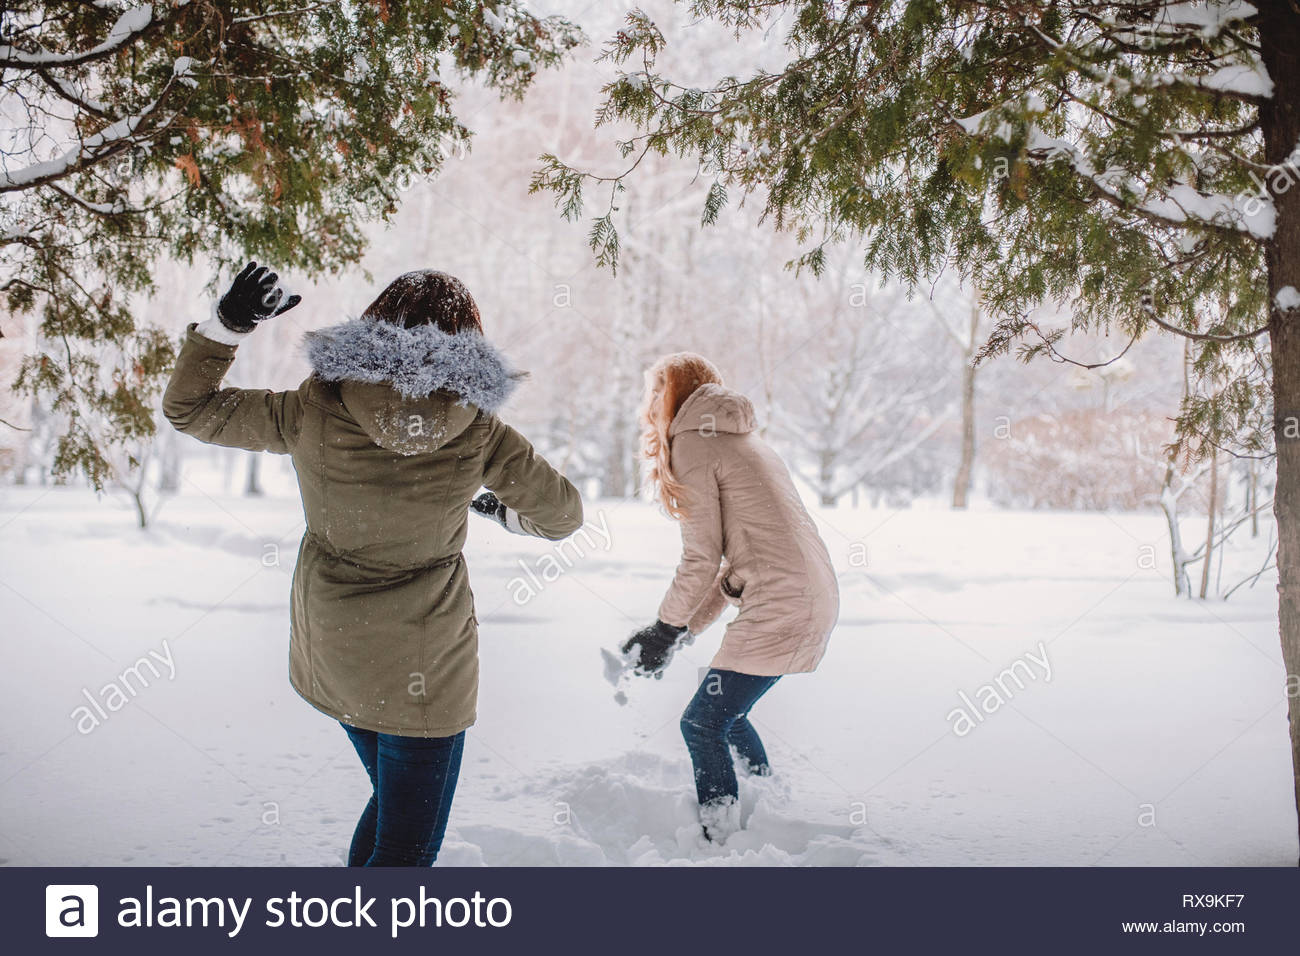 Rear view of playful woman throwing snow on wife in park - Stock Image